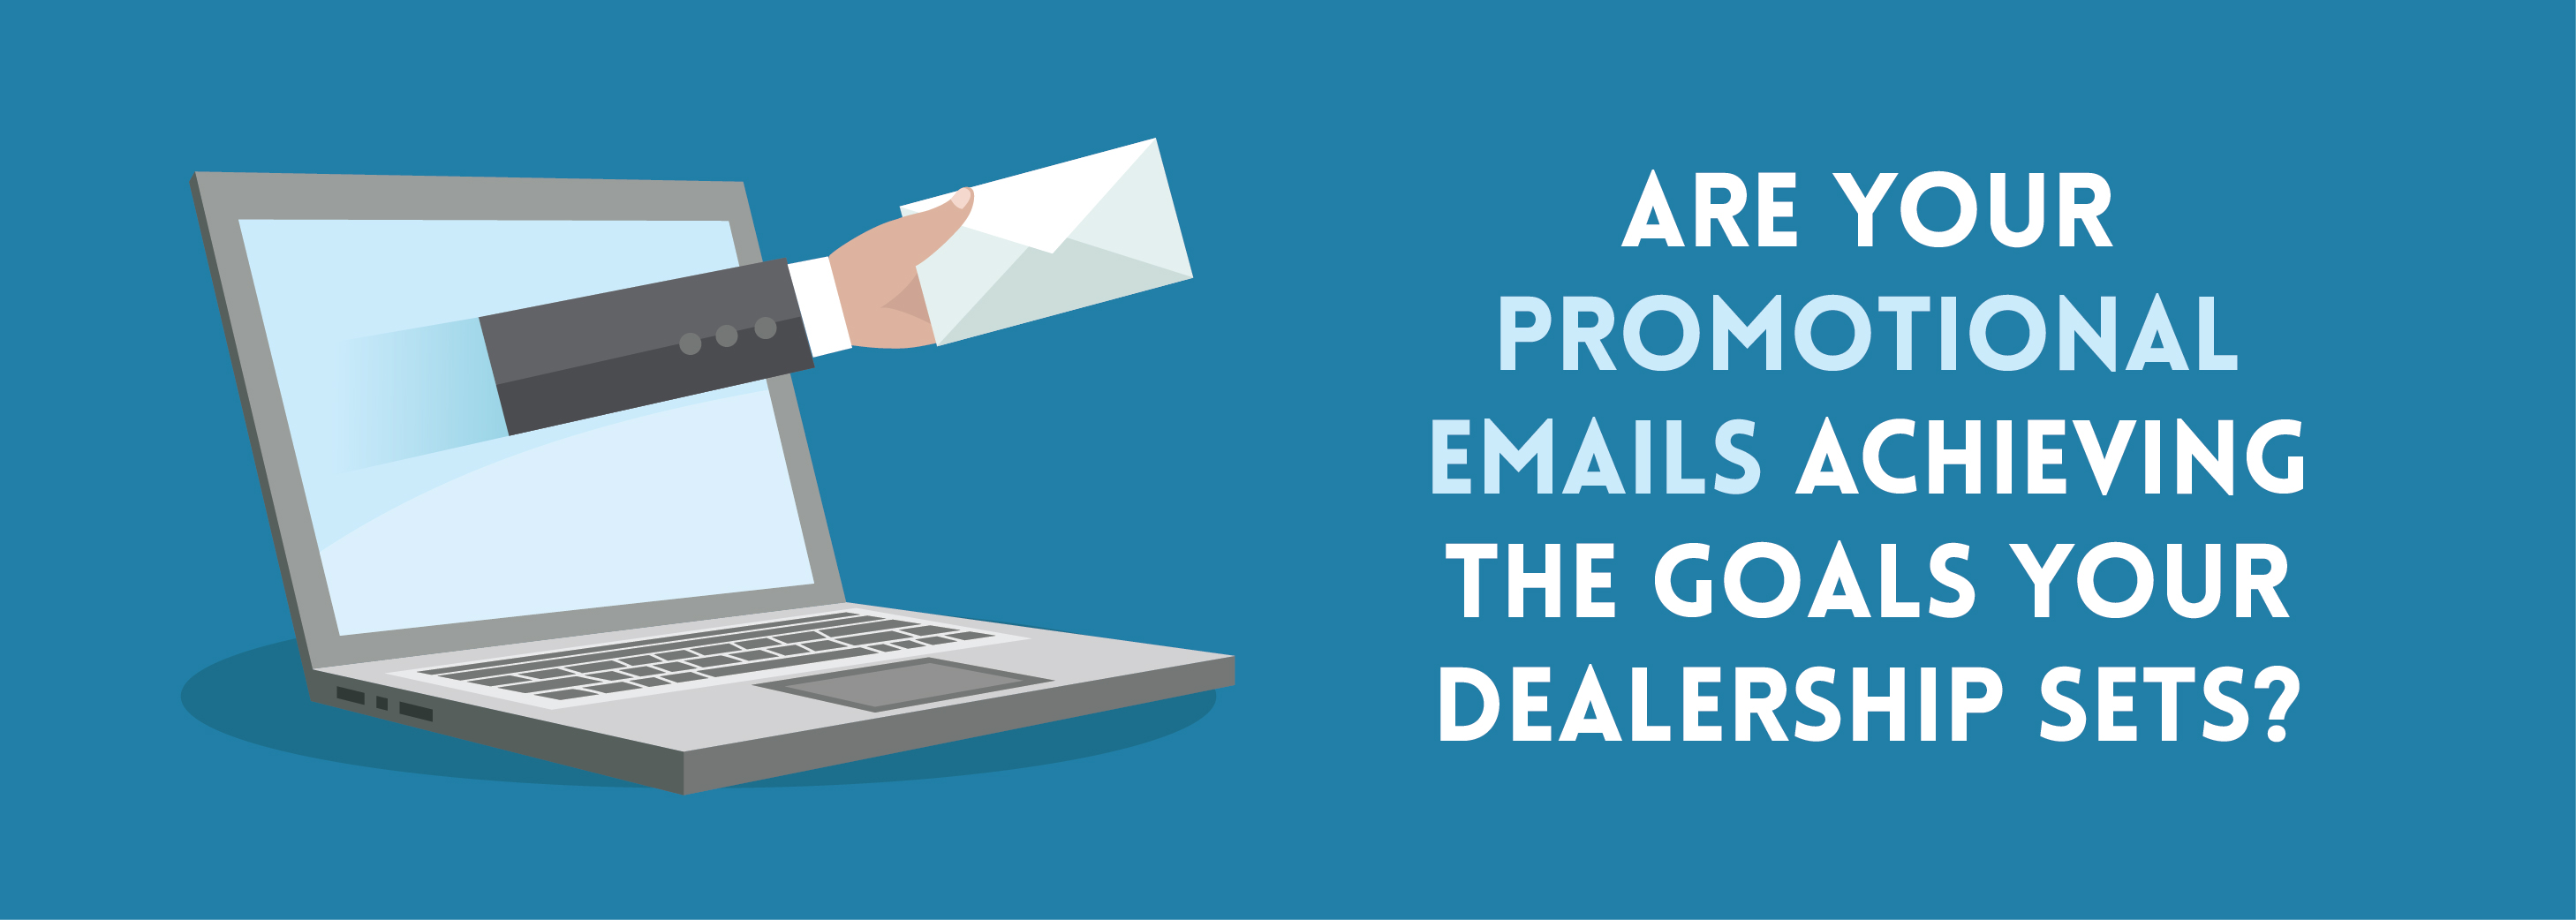 Are Your Promotional Emails Achieving The Goals Your Dealership Sets-01